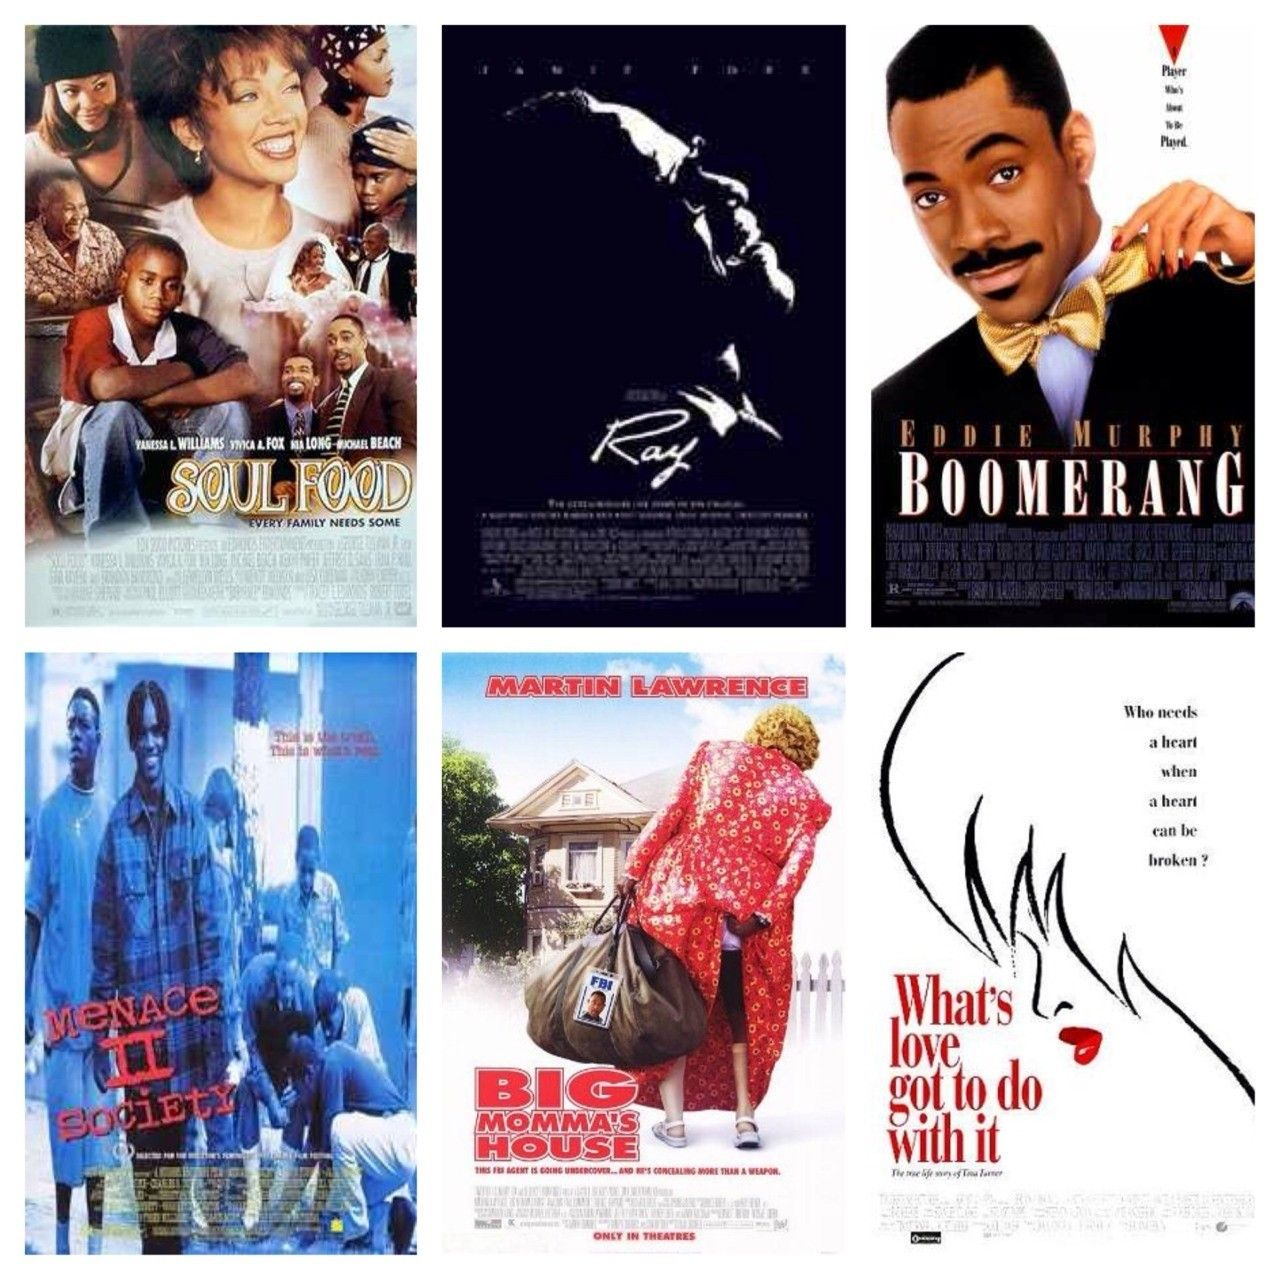 Back in the day image by tracy african american movies